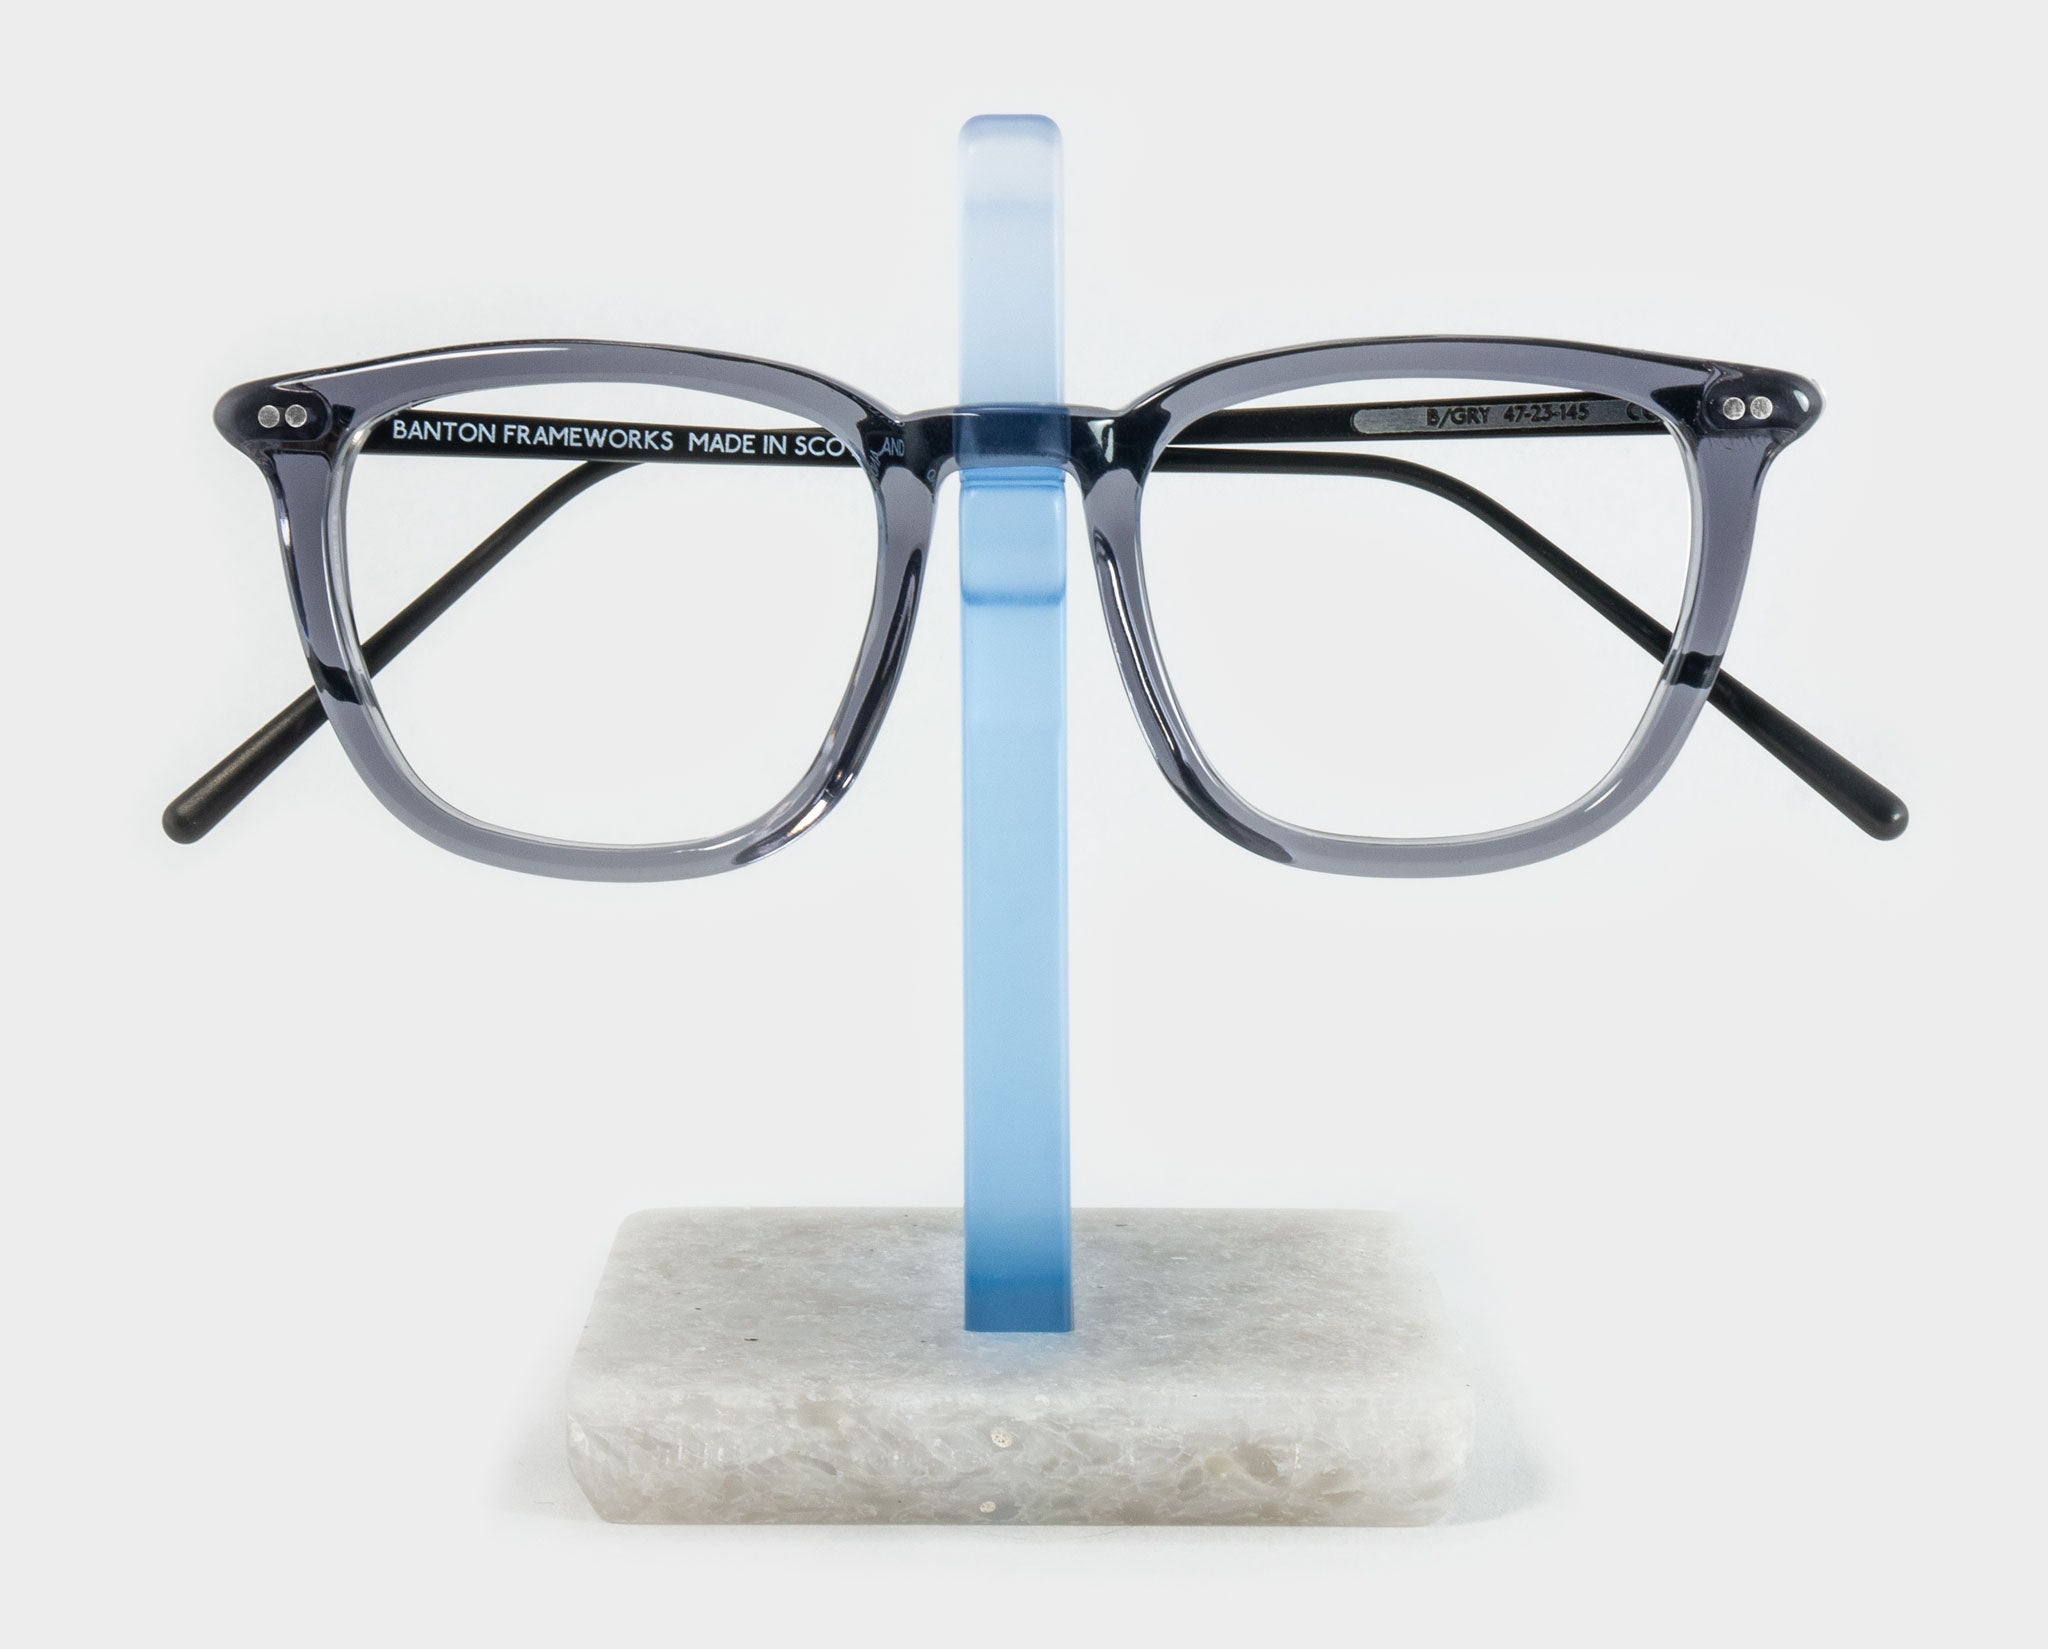 Blue Spectacle Holder with glasses front view